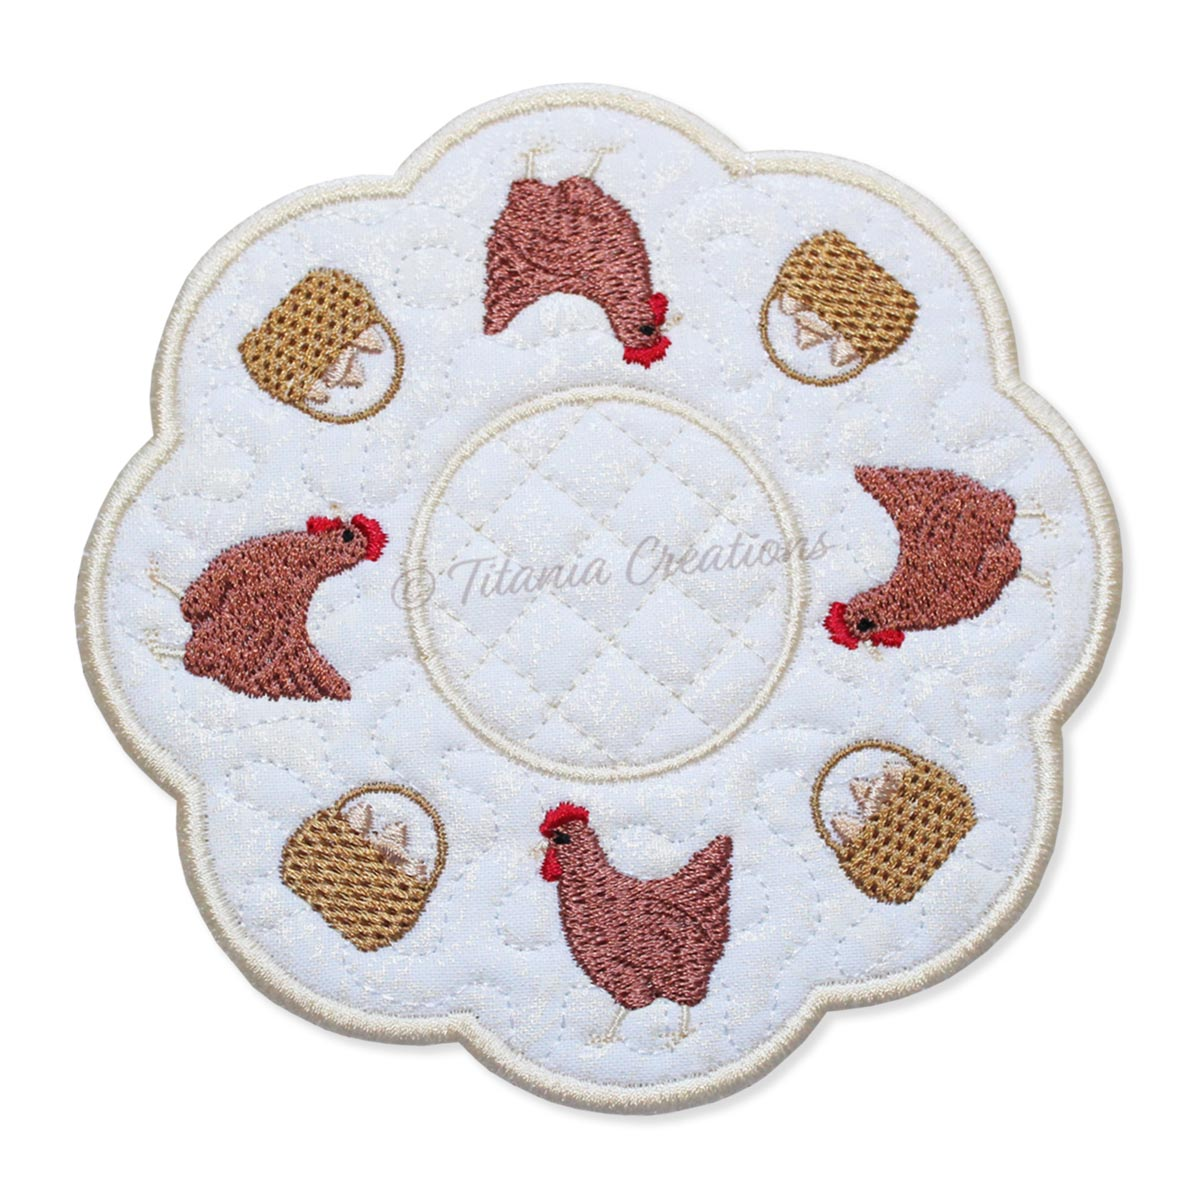 ITH Chicken Candle Mat 5x5 6x6 7x7 8x8